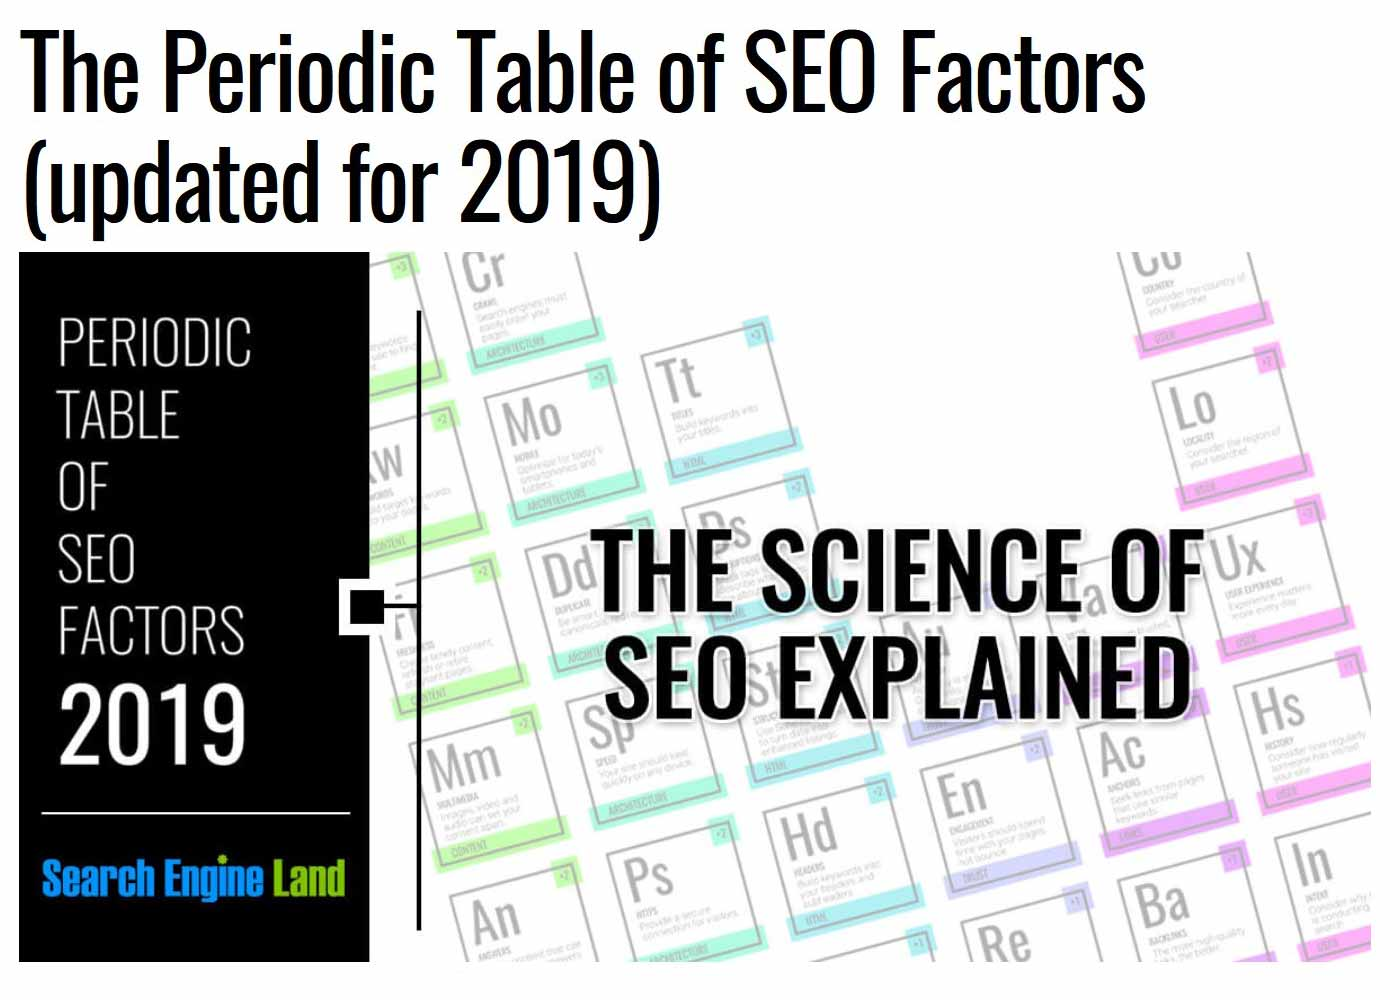 The Periodic Table of SEO Factors (updated for 2019)